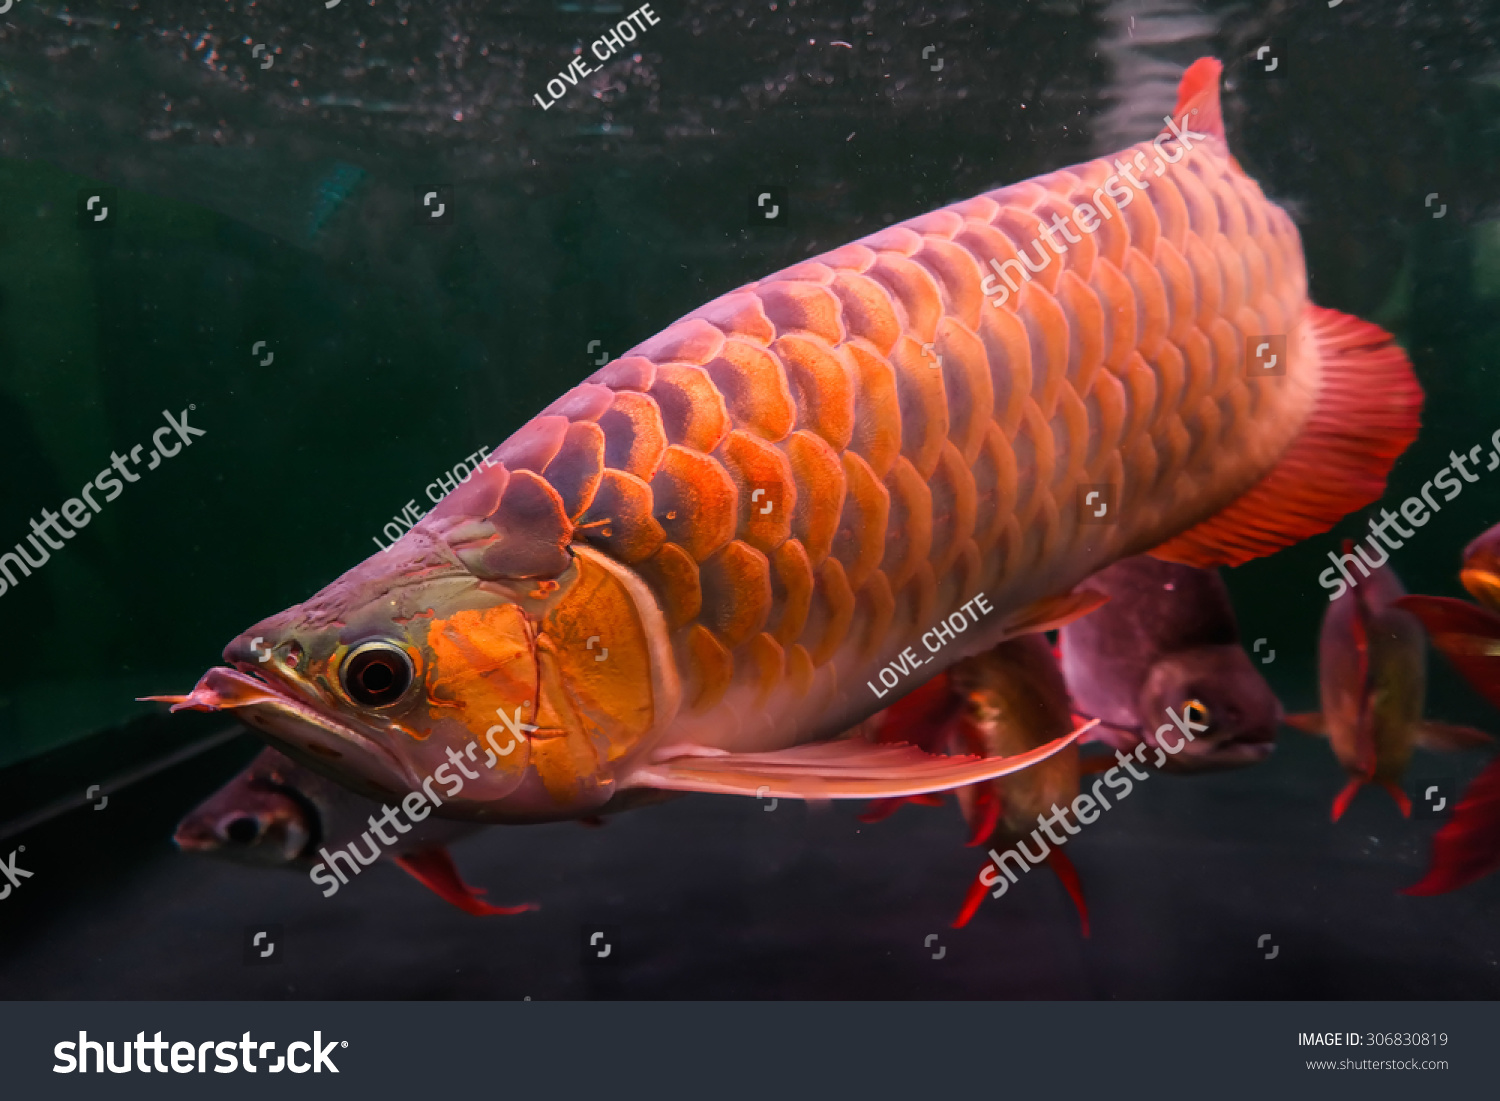 Fish for aquarium with name - Arowana Fish Name In Thailand Is Bplaa Mang Gon In The Aquarium